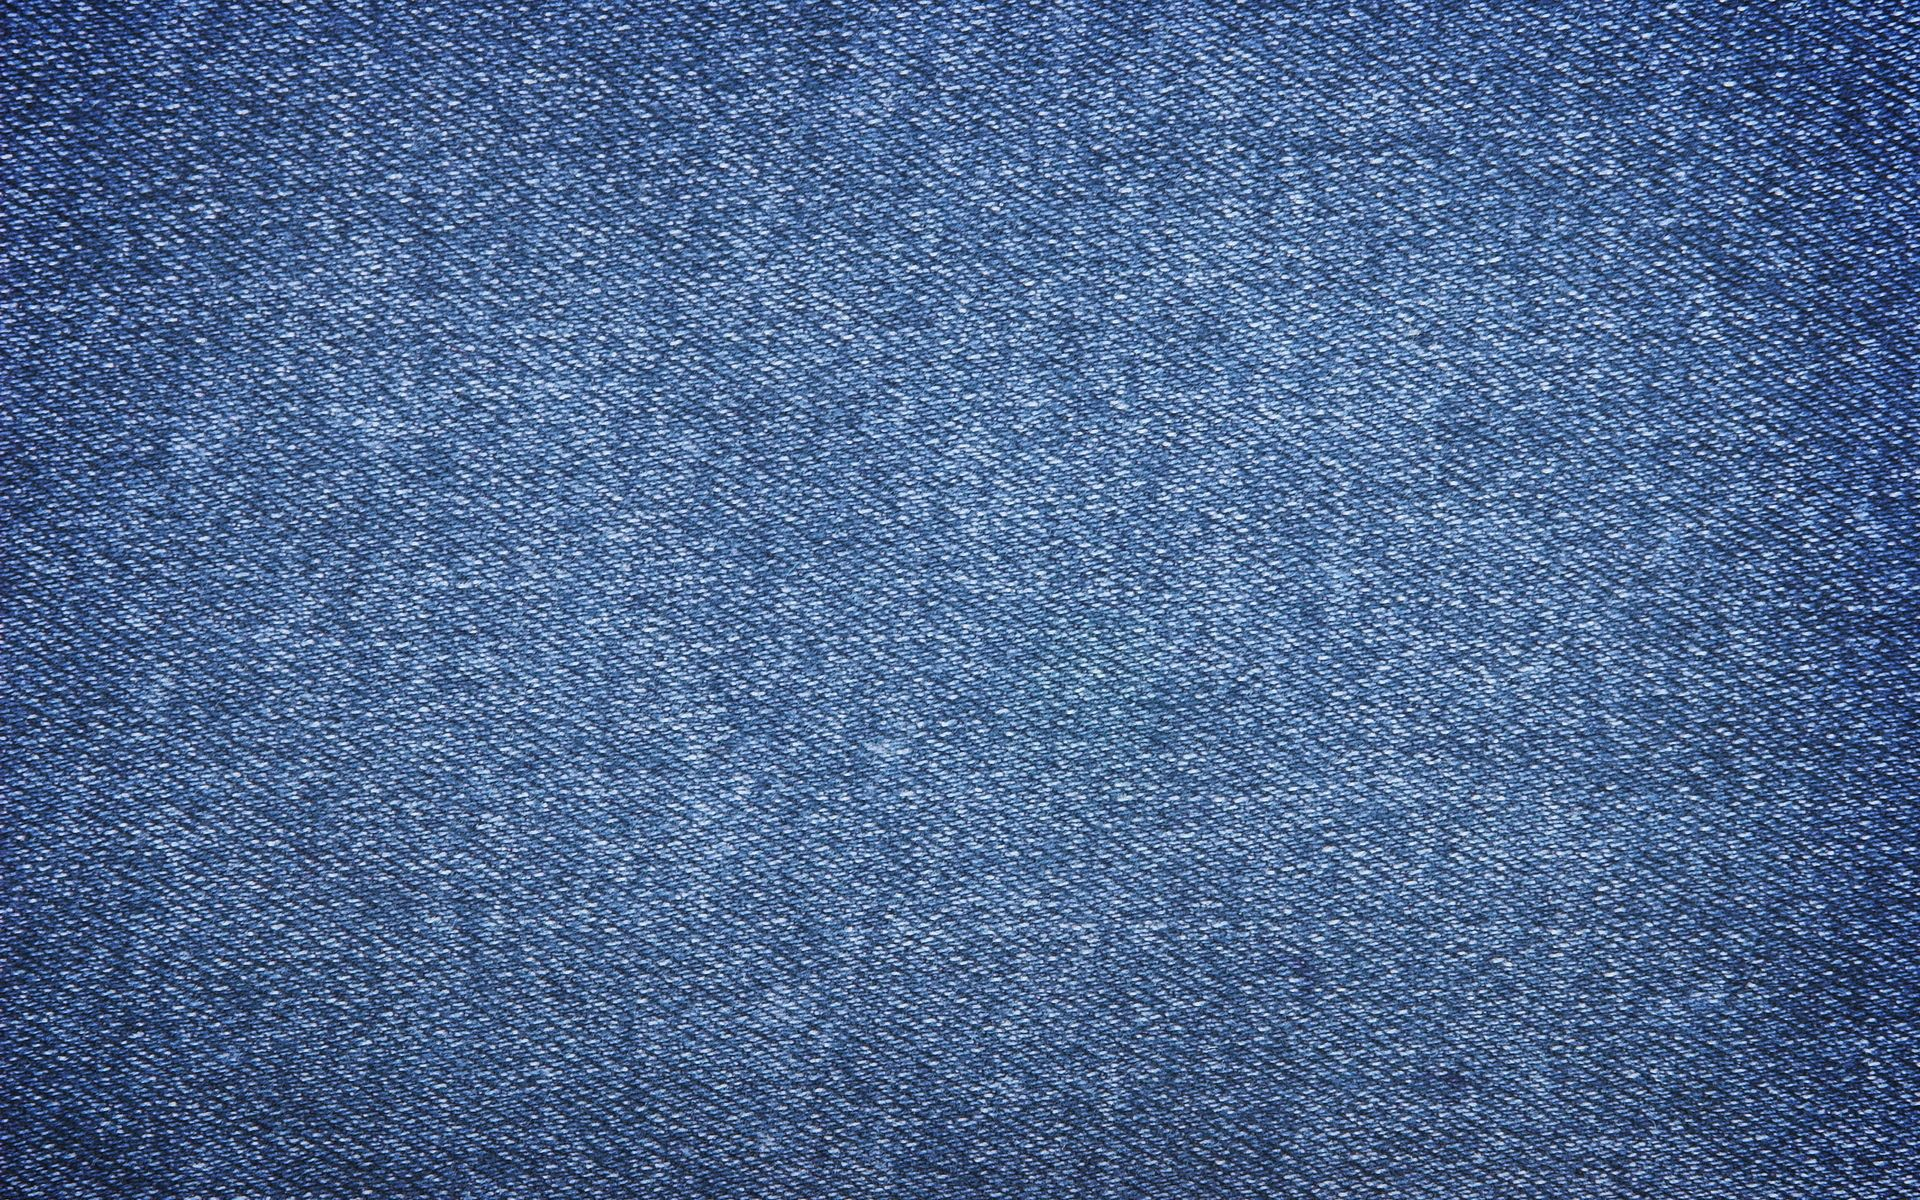 76324 download wallpaper Surface, Texture, Background, Textures, Jeans screensavers and pictures for free